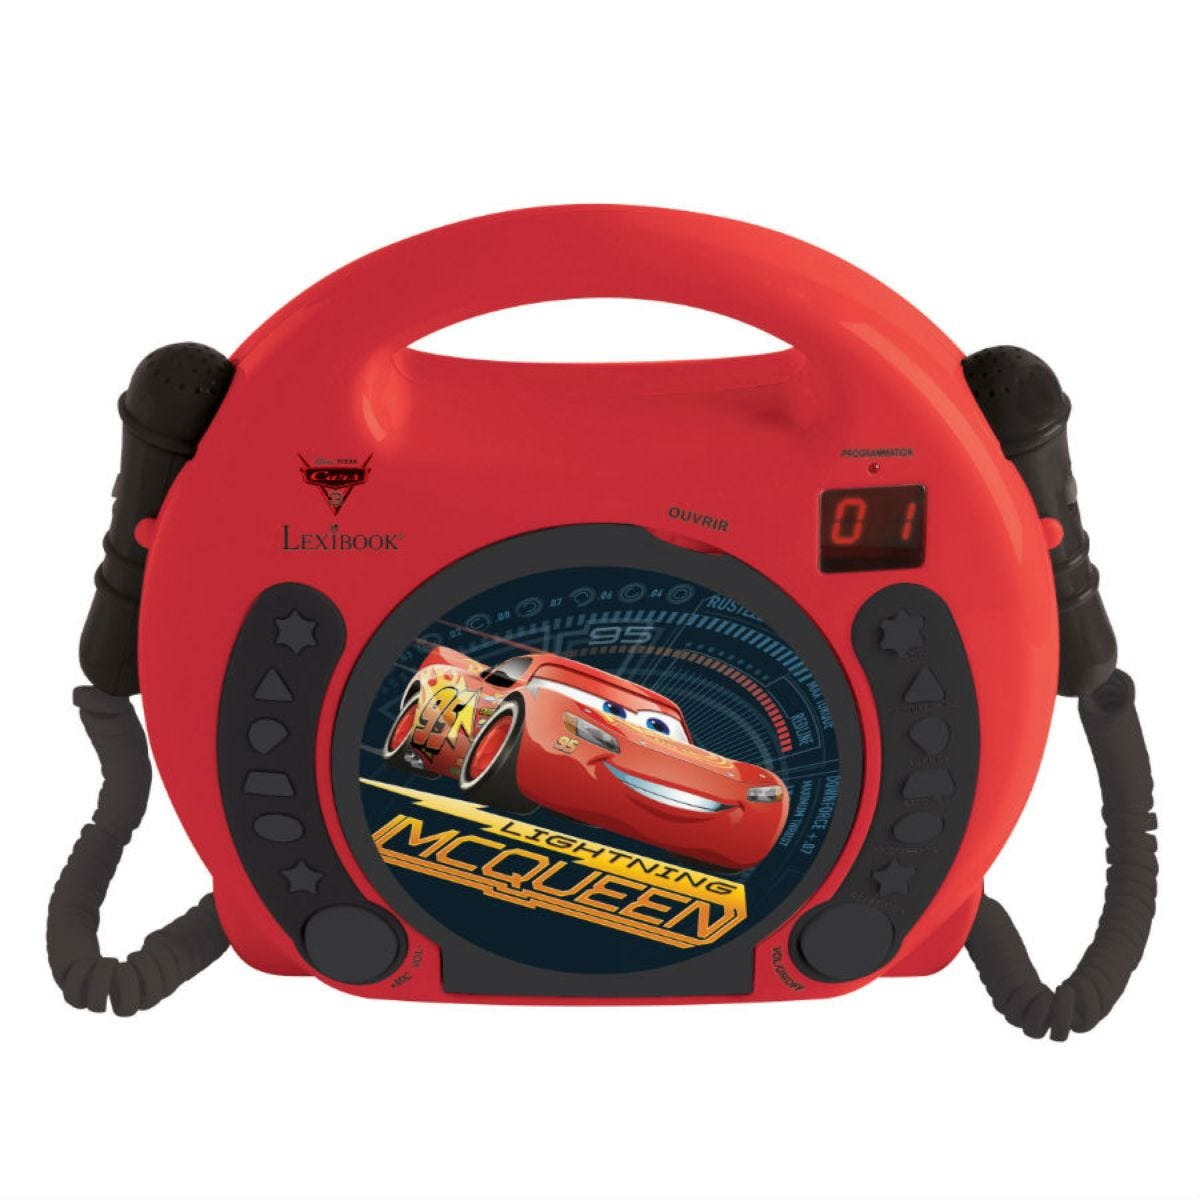 Disney Cars Sing-Along CD-Player with 2 Microphones